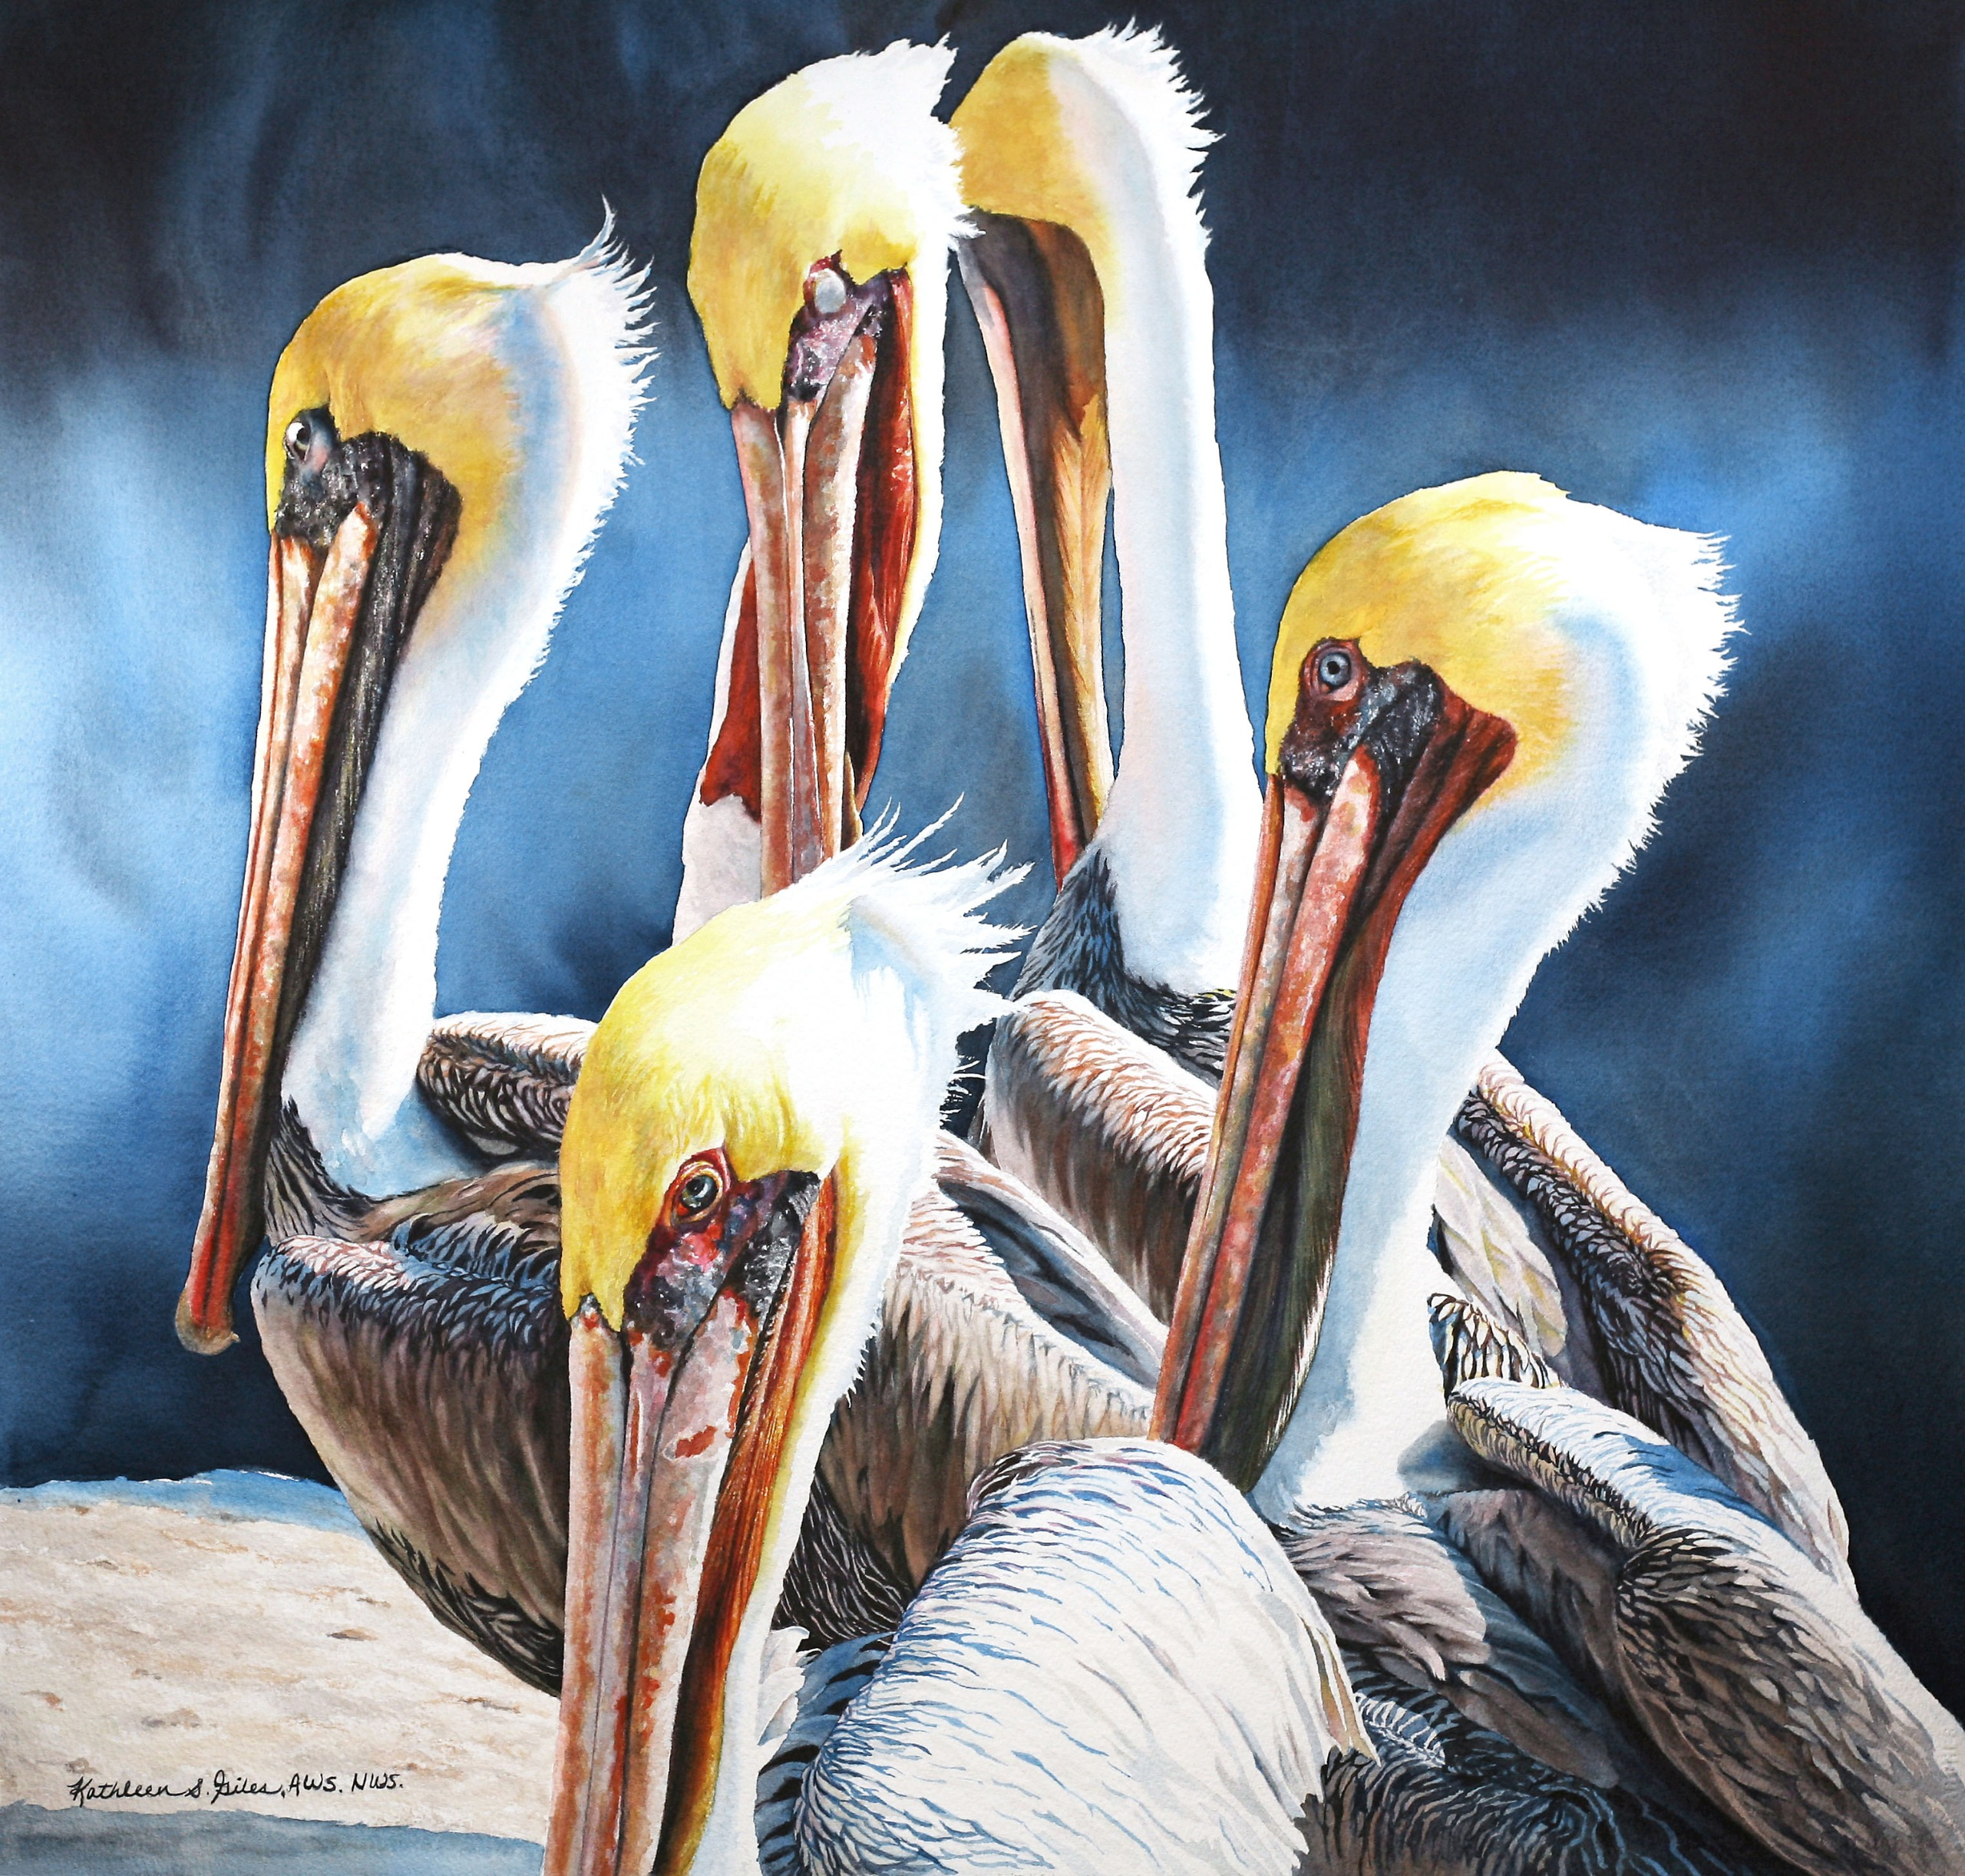 Demonstration: Painting The Background and Detail of Pelican Painting